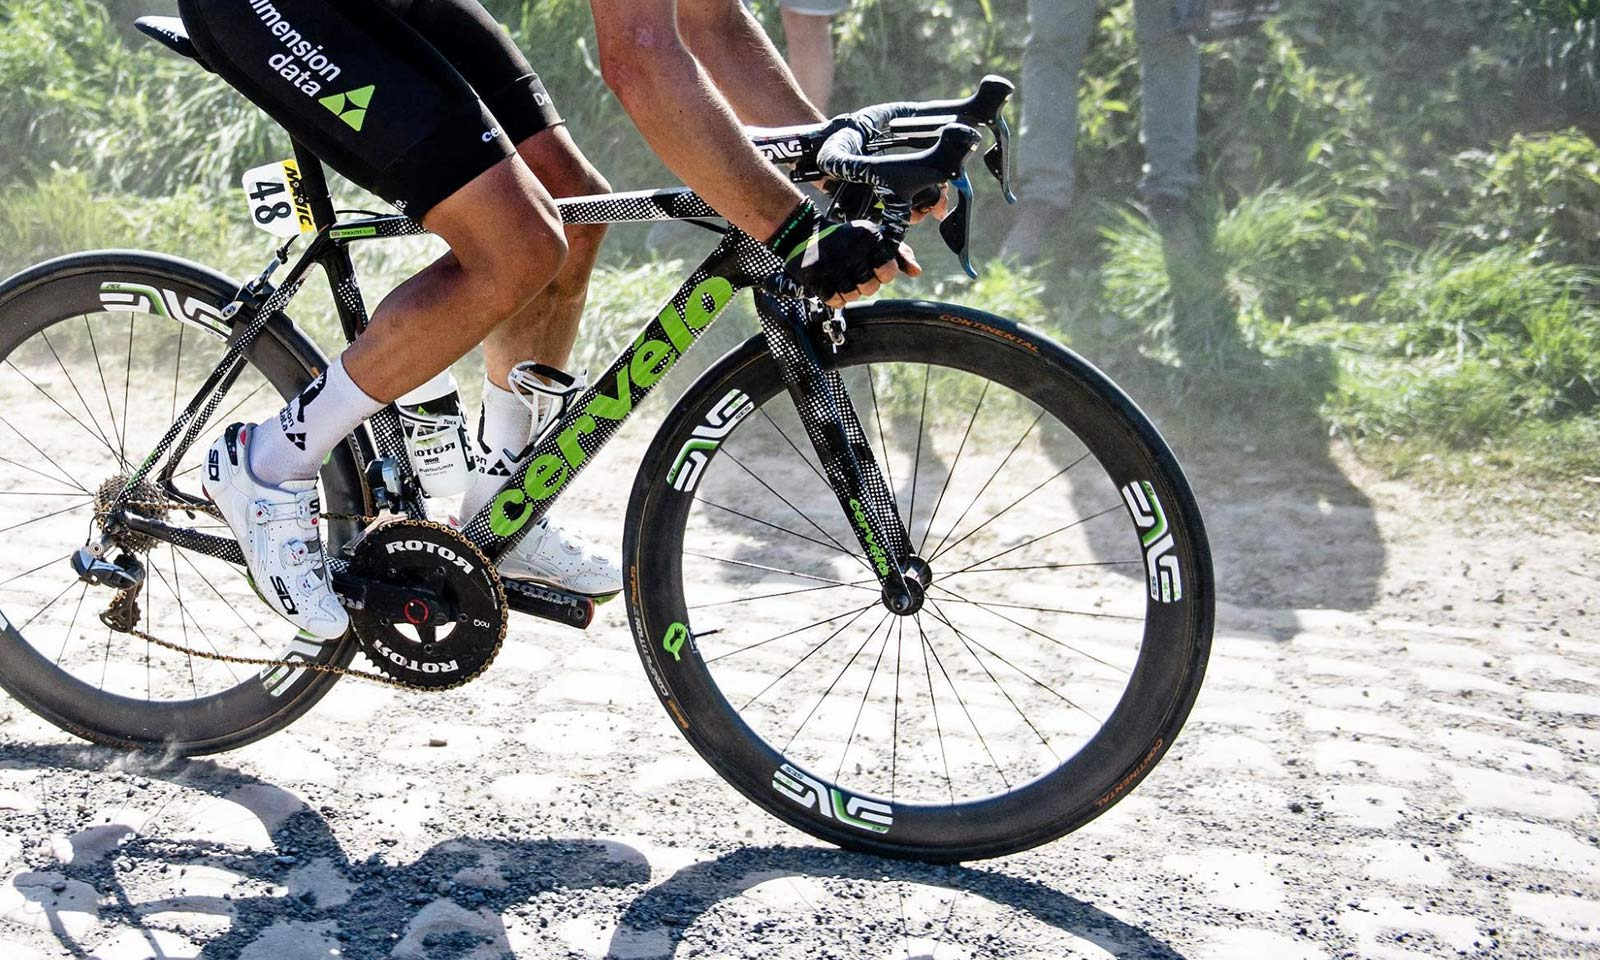 Win or buy a Cervelo R5 Classics Edition frame in limited